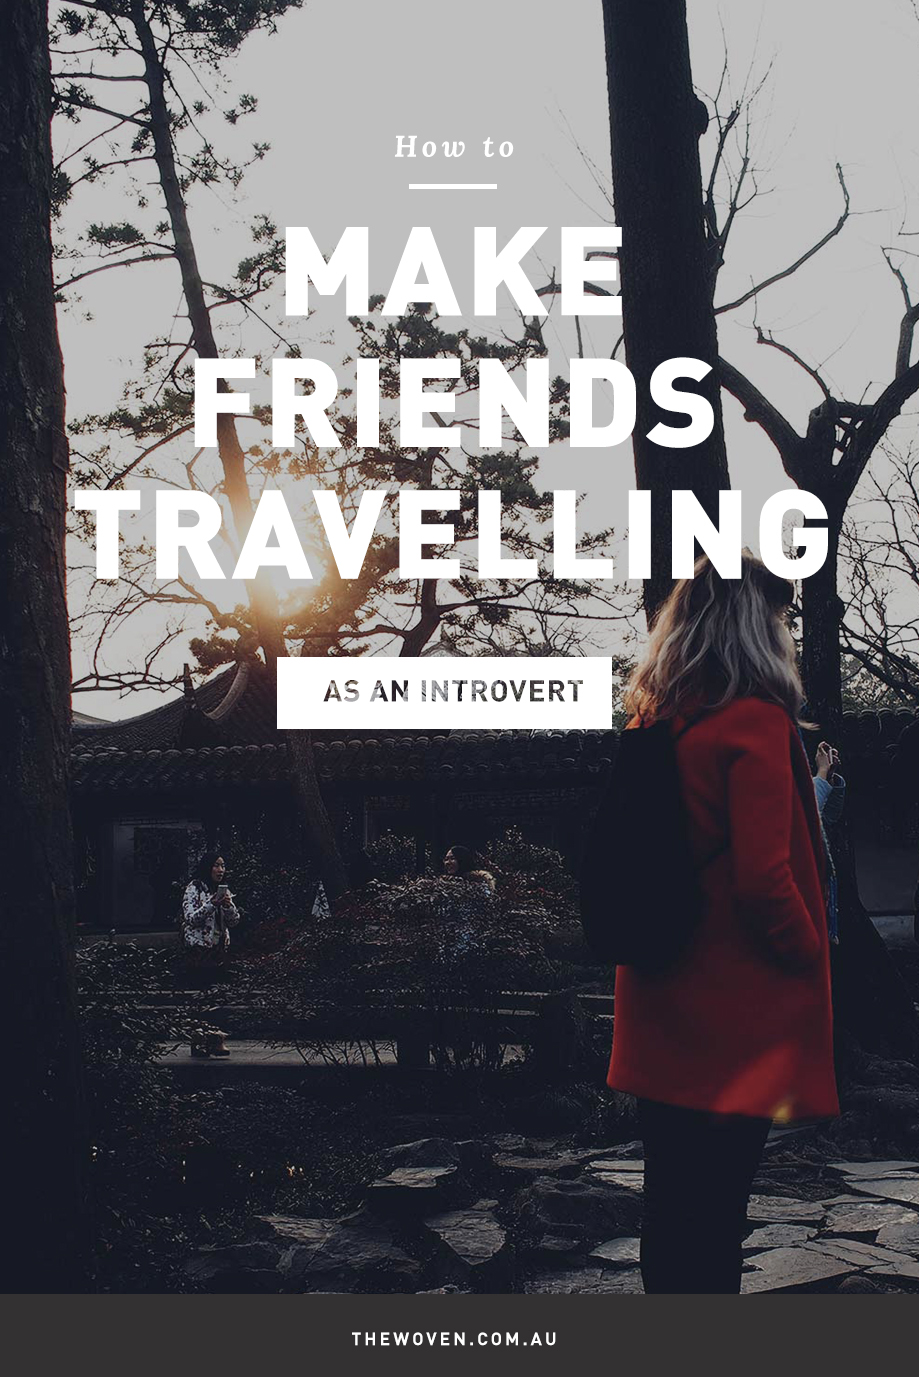 How to make friends travelling as an introvert